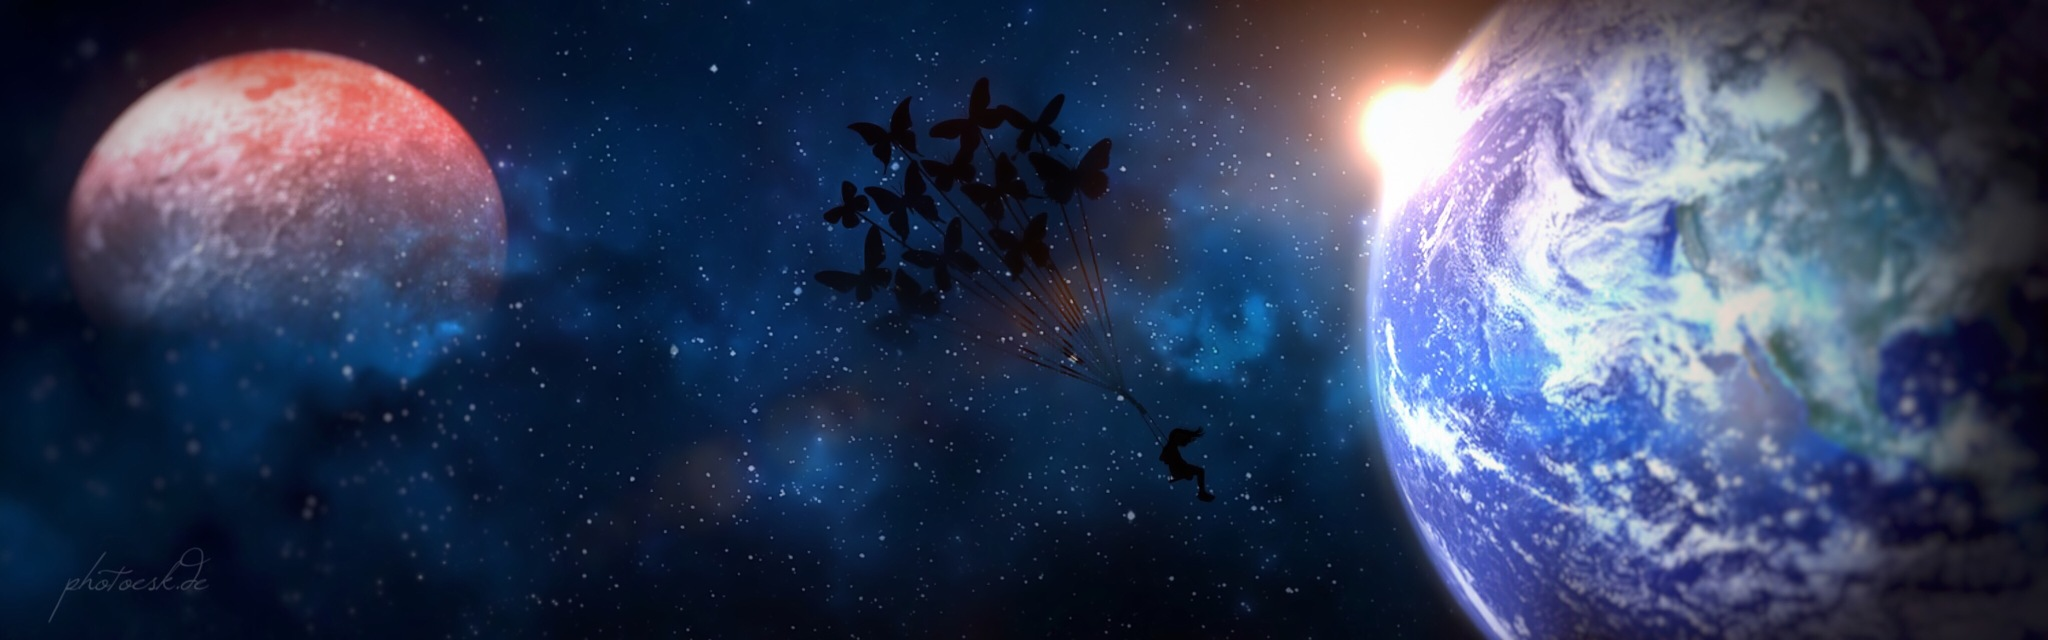 """Fly me to the moon - Series """"Childhood"""" by photoesk - just Art"""